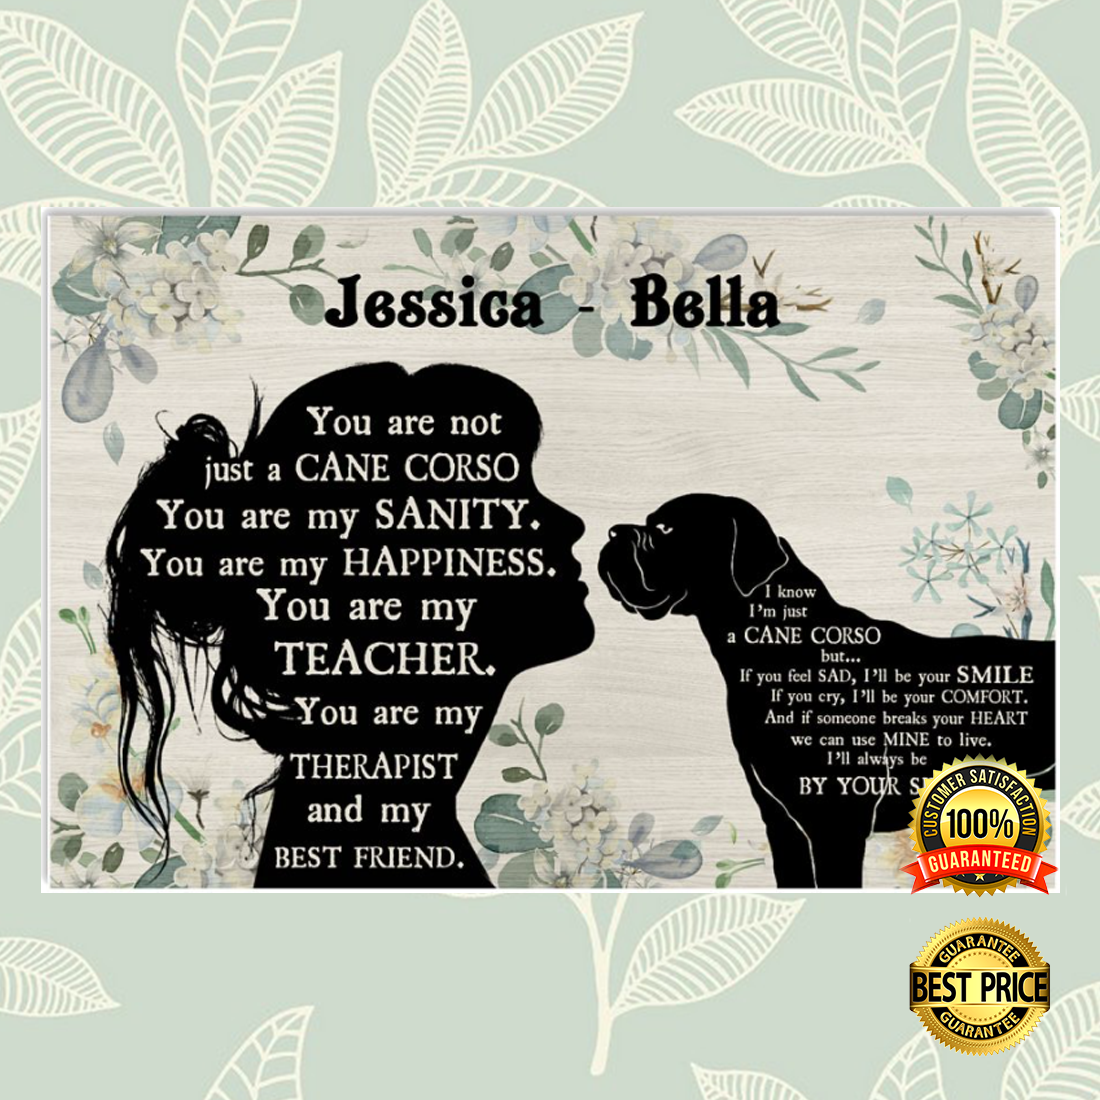 PERSONALIZED GIRL AND CANE CORSE YOU ARE NOT JUST A CANE CORSE POSTER 5